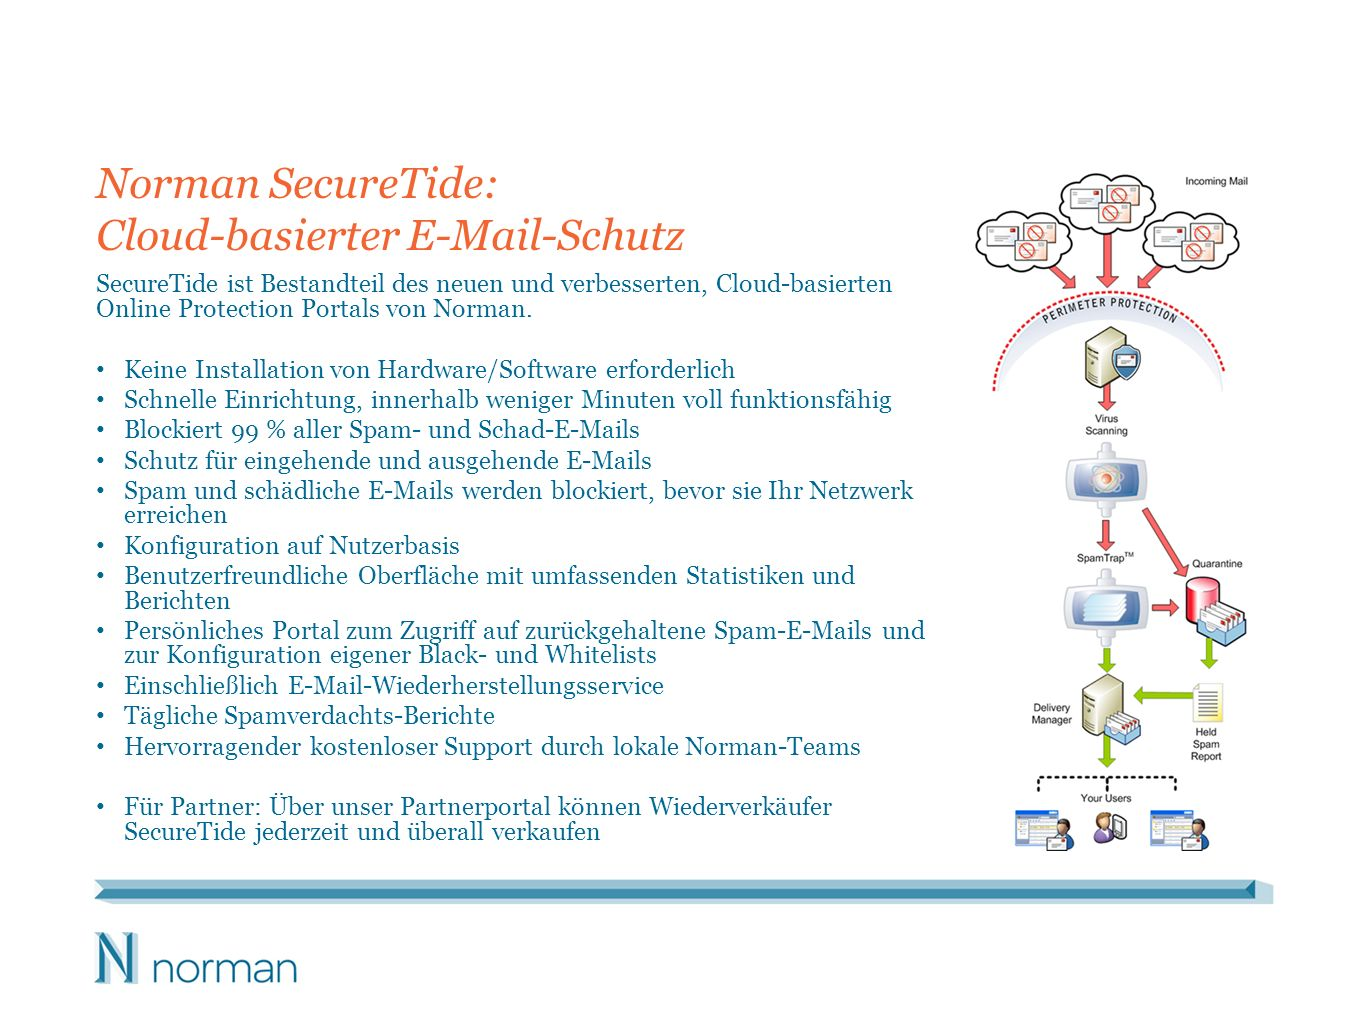 Norman SecureTide: Cloud-basierter E-Mail-Schutz